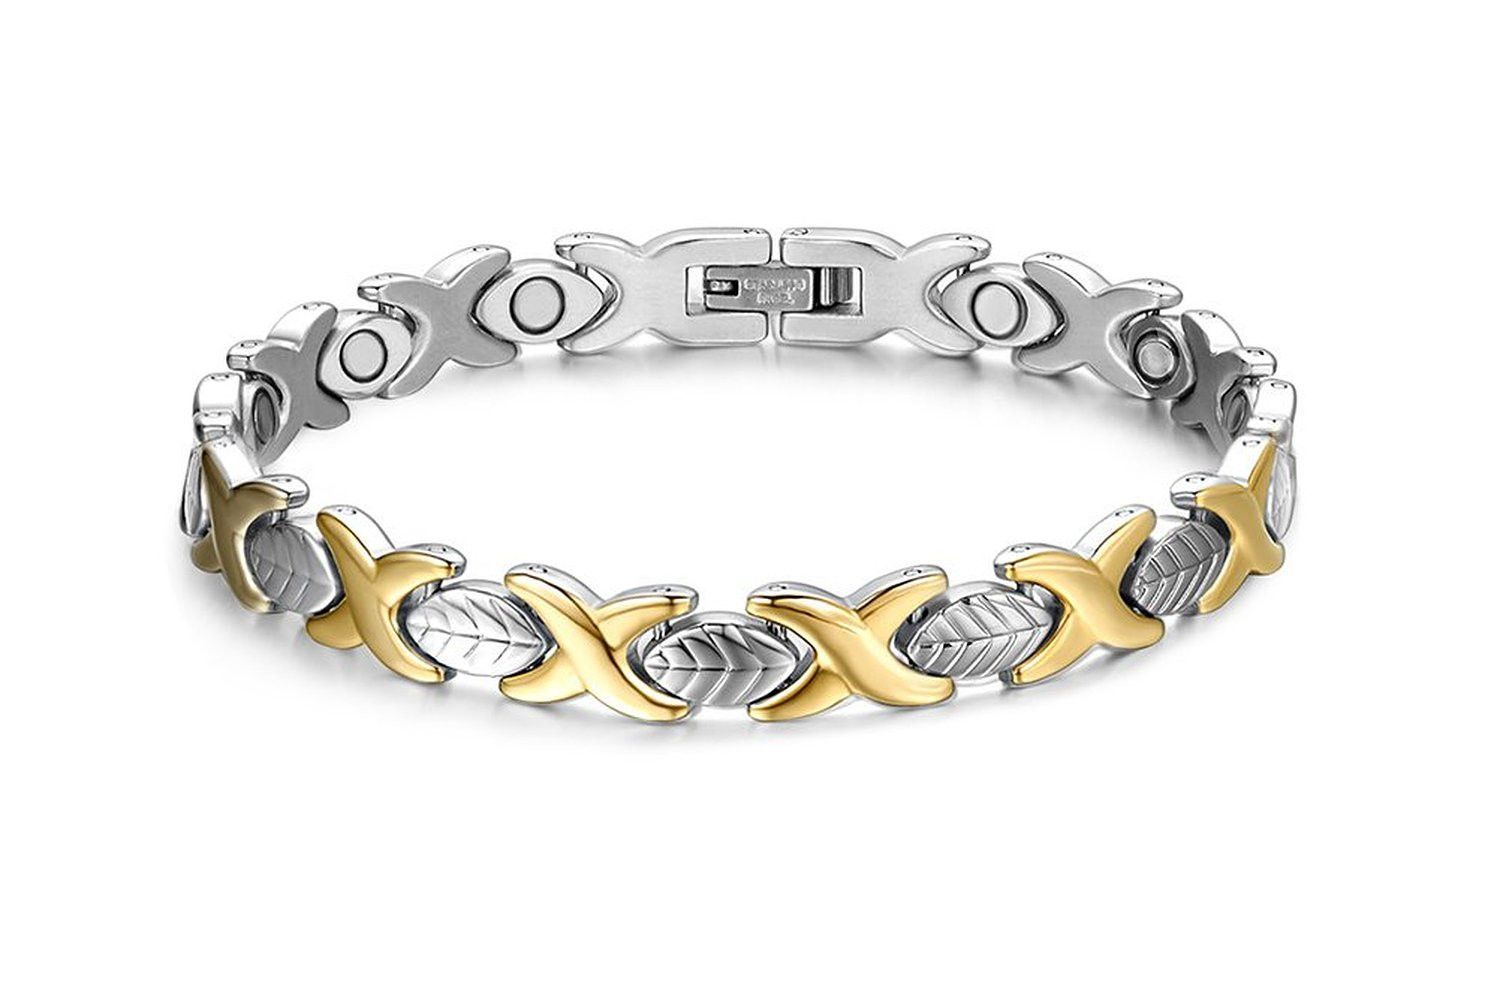 Mens womens stainless steel magnetic link bracelet bangle with free